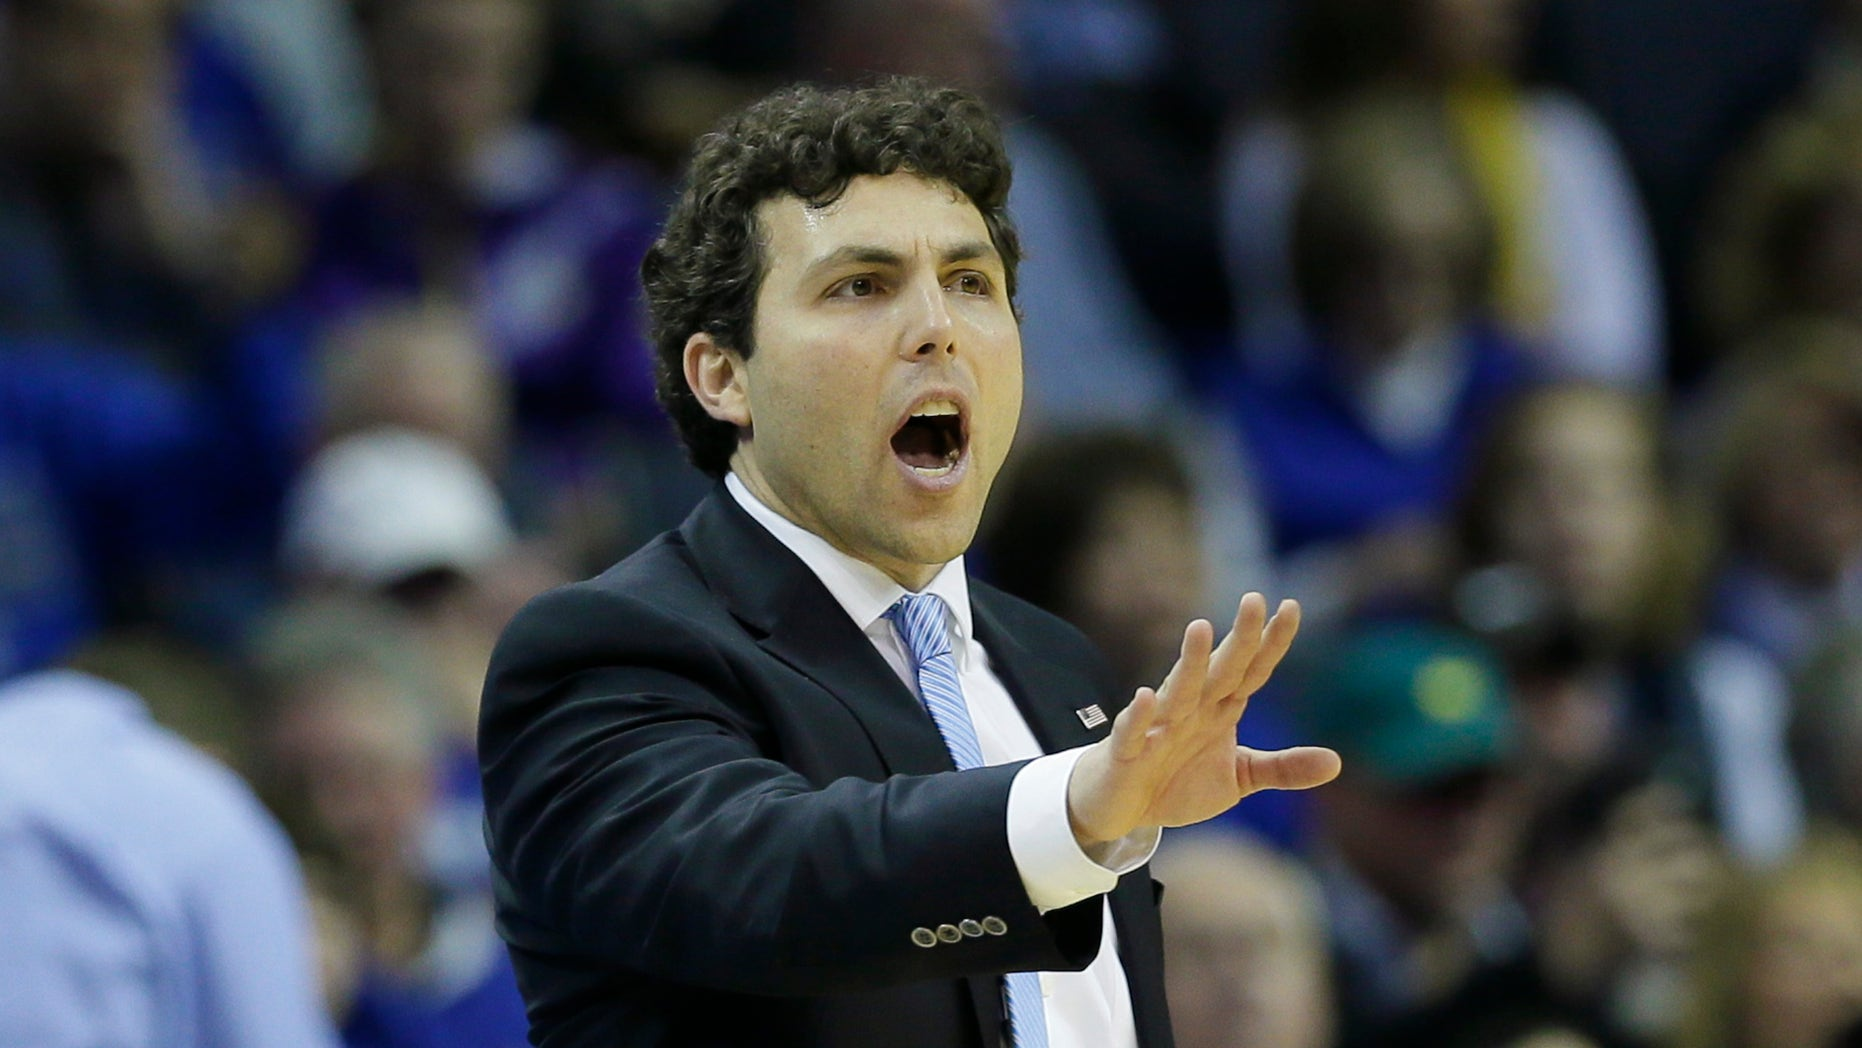 Memphis coach Josh Pastner shouts to players in the second half of an NCAA college basketball game against Central Florida in Memphis, Tenn., Wednesday, Feb. 12, 2014. Memphis defeated UCF 76-70. (AP Photo/Danny Johnston)